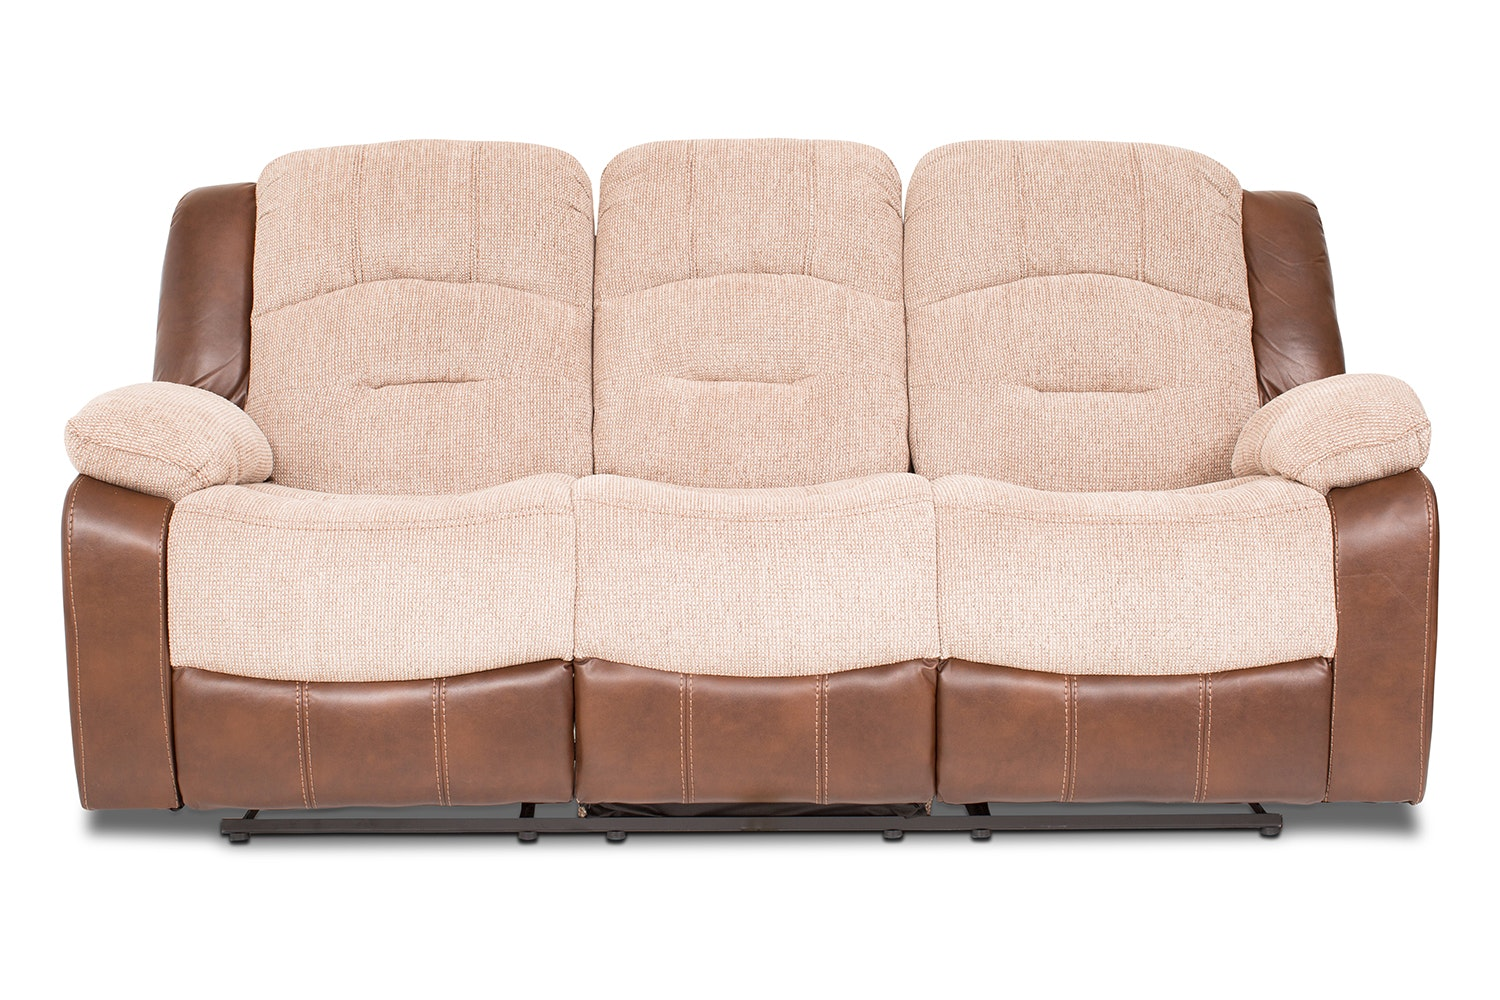 Mason 3 Seater Recliner | Tan & Beige